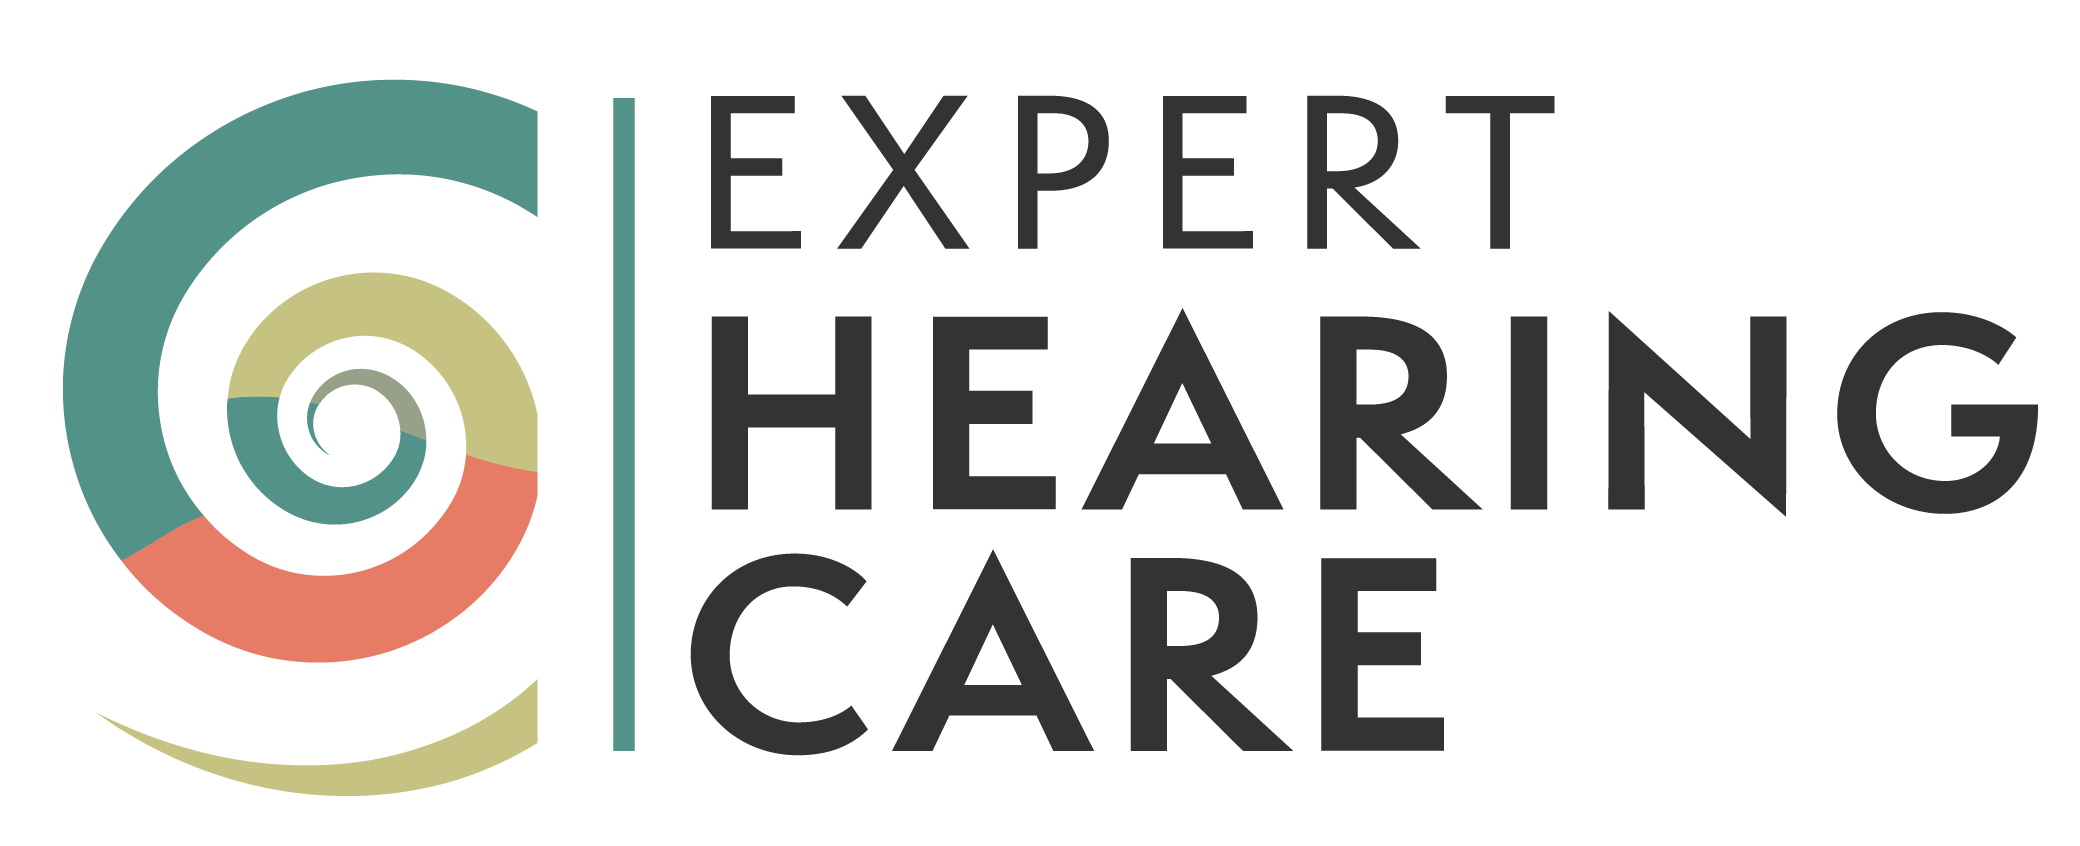 Las Cruces expert hearing care logo